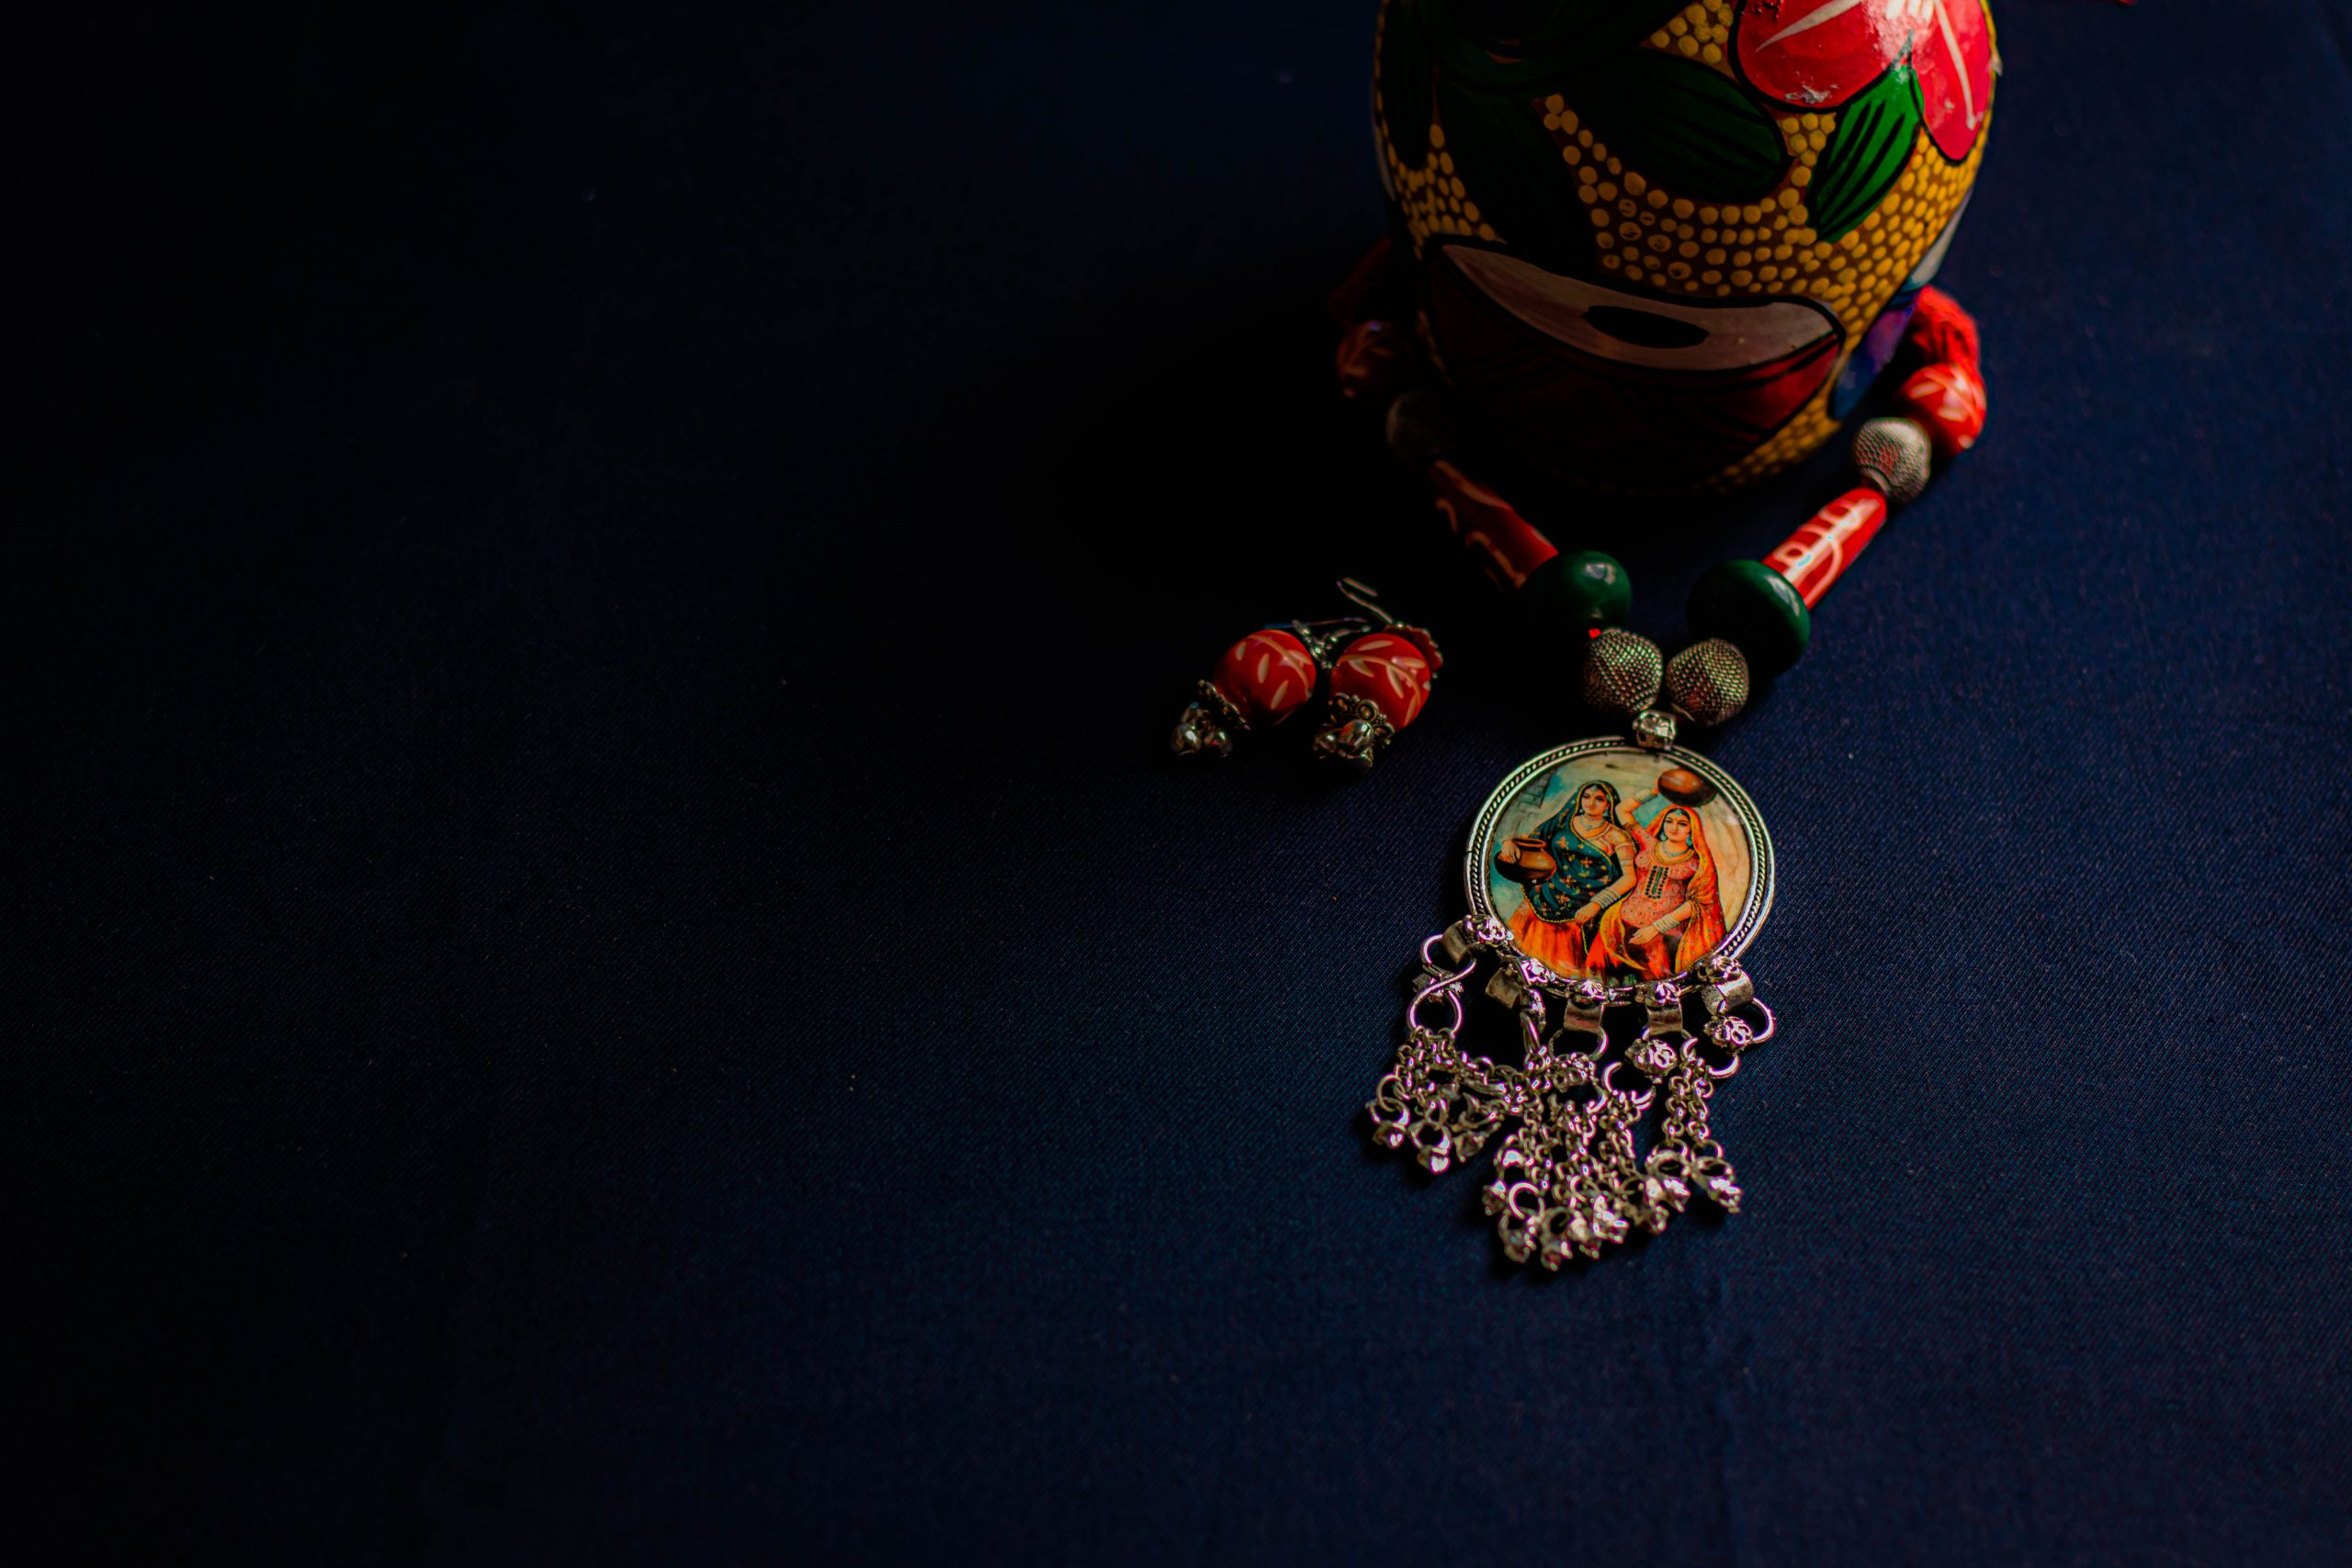 An traditional necklace and earrings